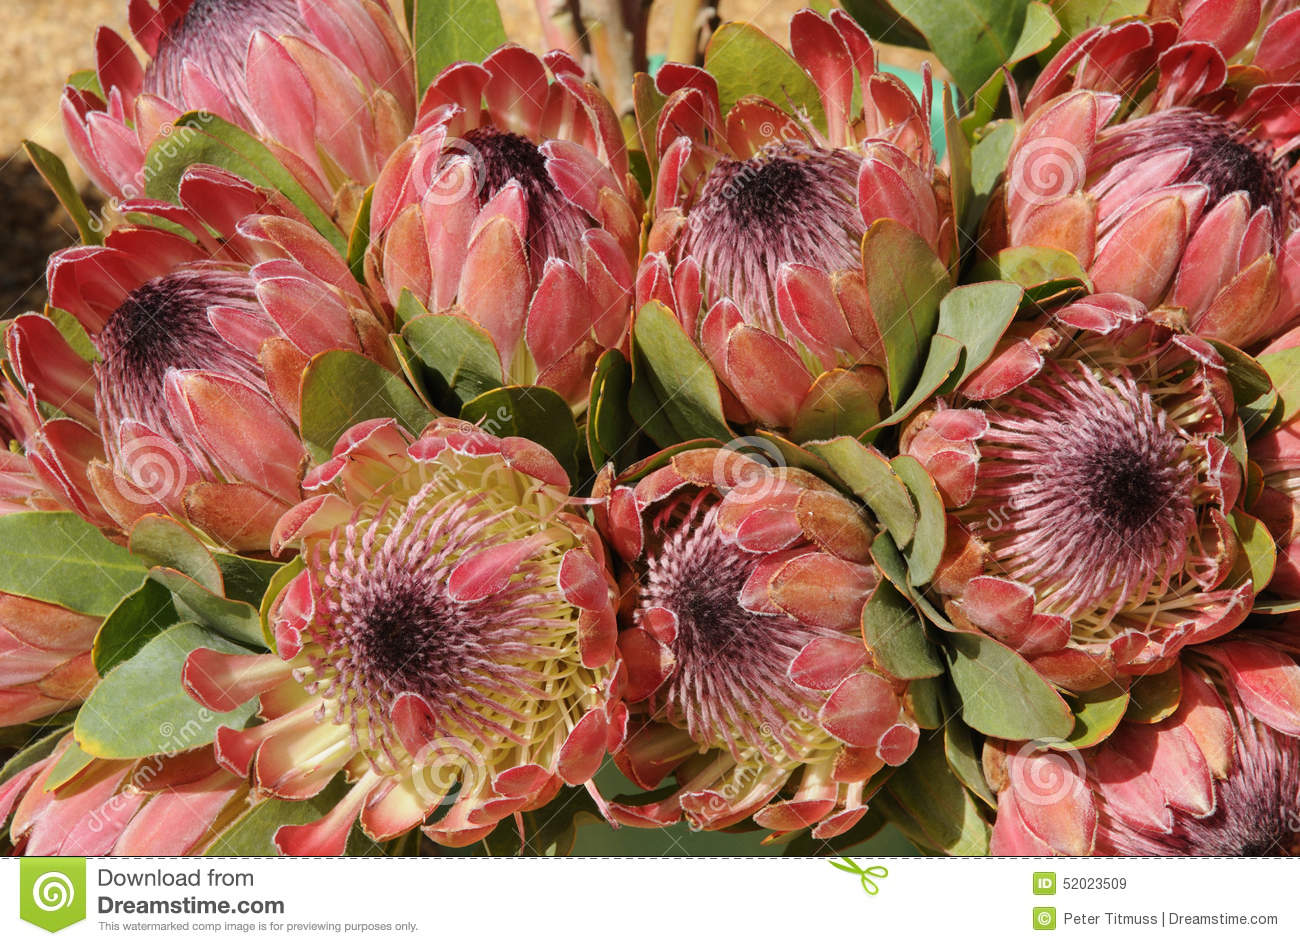 protea flowers stock image image of cape bunches national 52023509